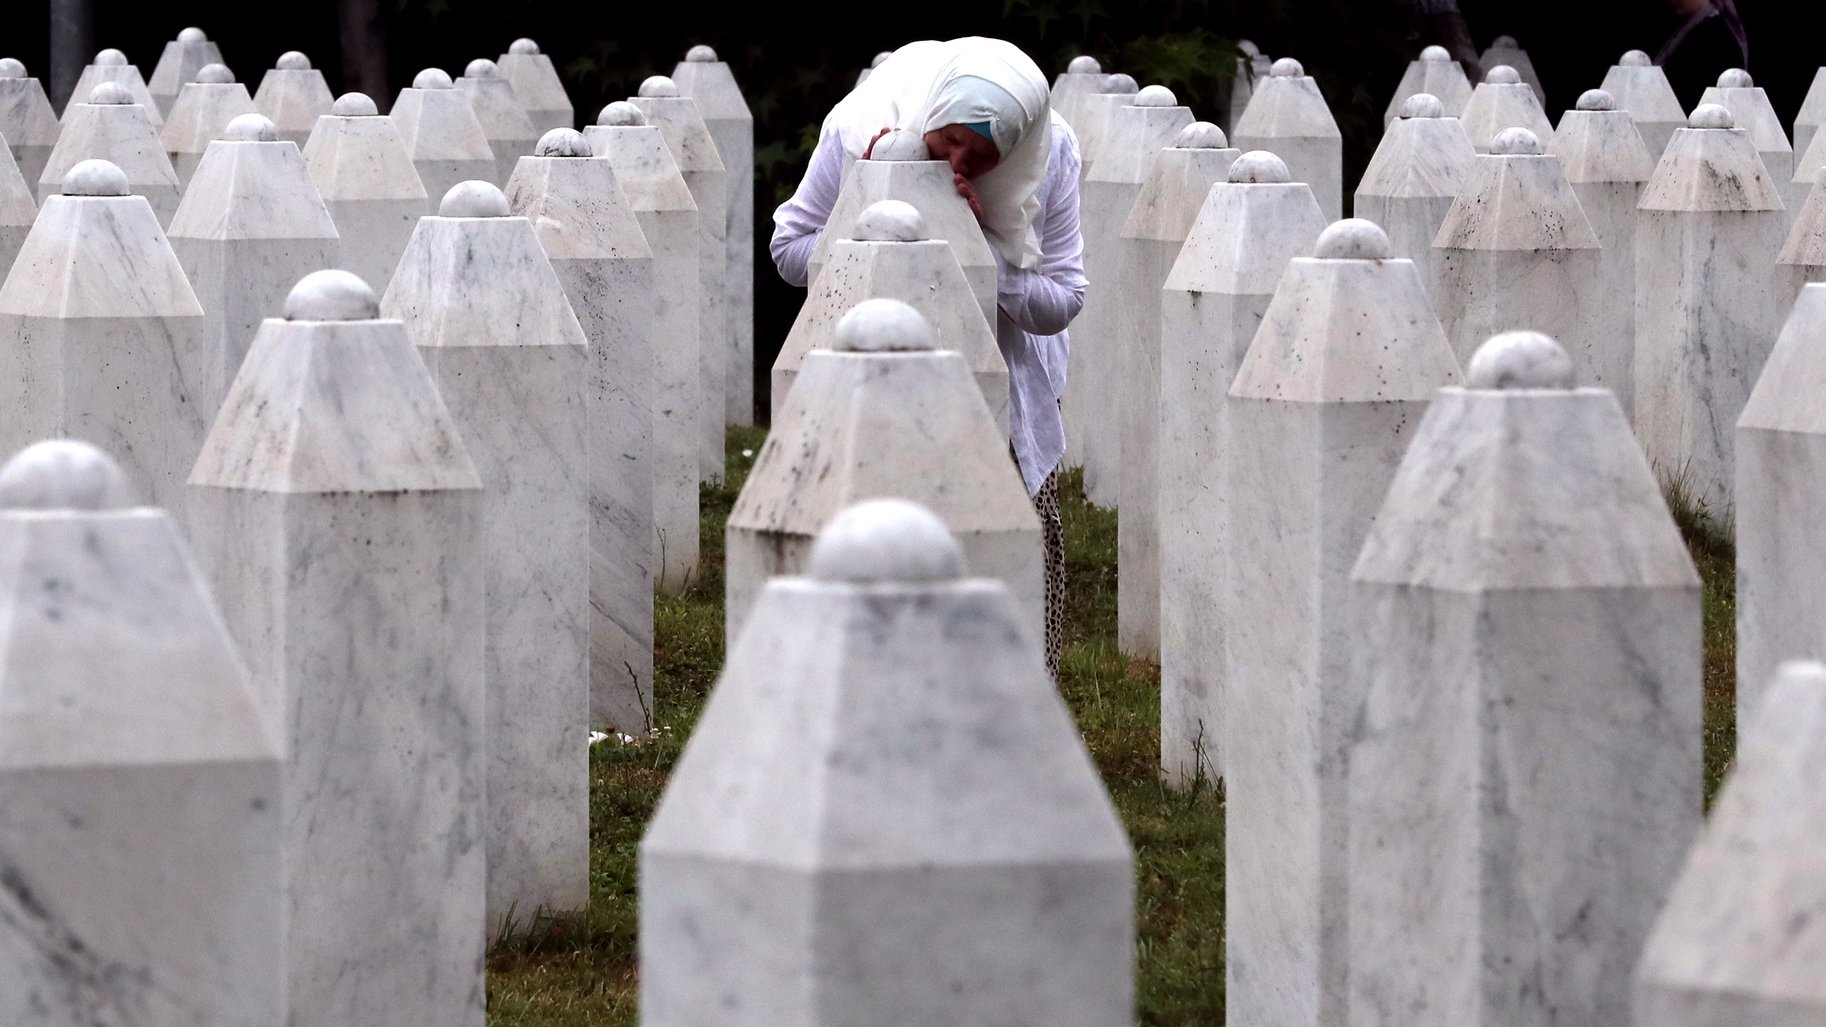 epaselect epa09336592 A Bosnian Muslim woman mourns while touching a gravestone during a funeral ceremony for nineteen newly-identified Bosnian Muslim victims, at the Potocari Memorial Center and Cemetery, in Srebrenica, Bosnia and Herzegovina, 11 July 2021. The burial was part of a memorial ceremony to mark the 26th anniversary of the Srebrenica genocide, considered the worst atrocity of Bosnia's 1992-95 war. More than 8,000 Muslim men and boys were executed in the 1995 killing spree after Bosnian Serb forces overran the town.  EPA/FEHIM DEMIR